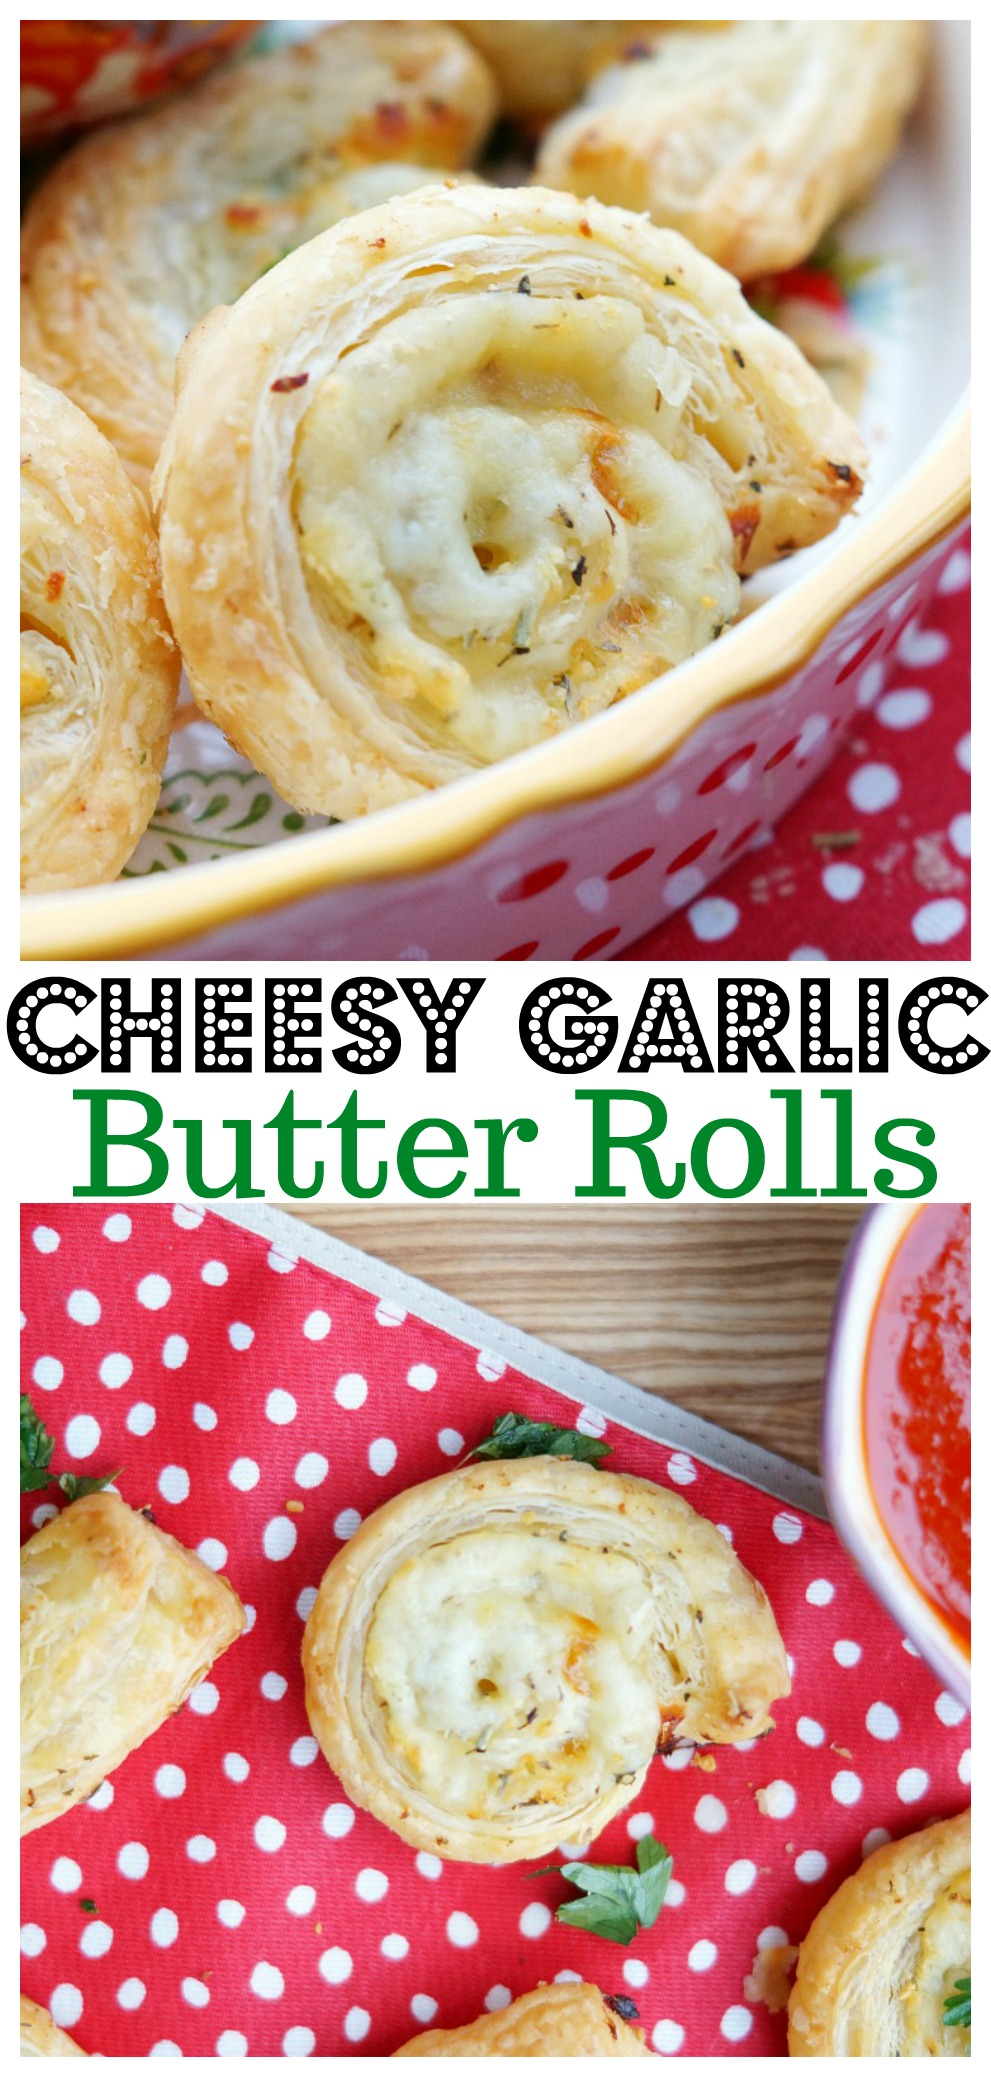 Cheesy Garlic Butter Rolls, layers of puff pastry, cheese, garlic butter and fresh herbs are all rolled up in pinwheel form!